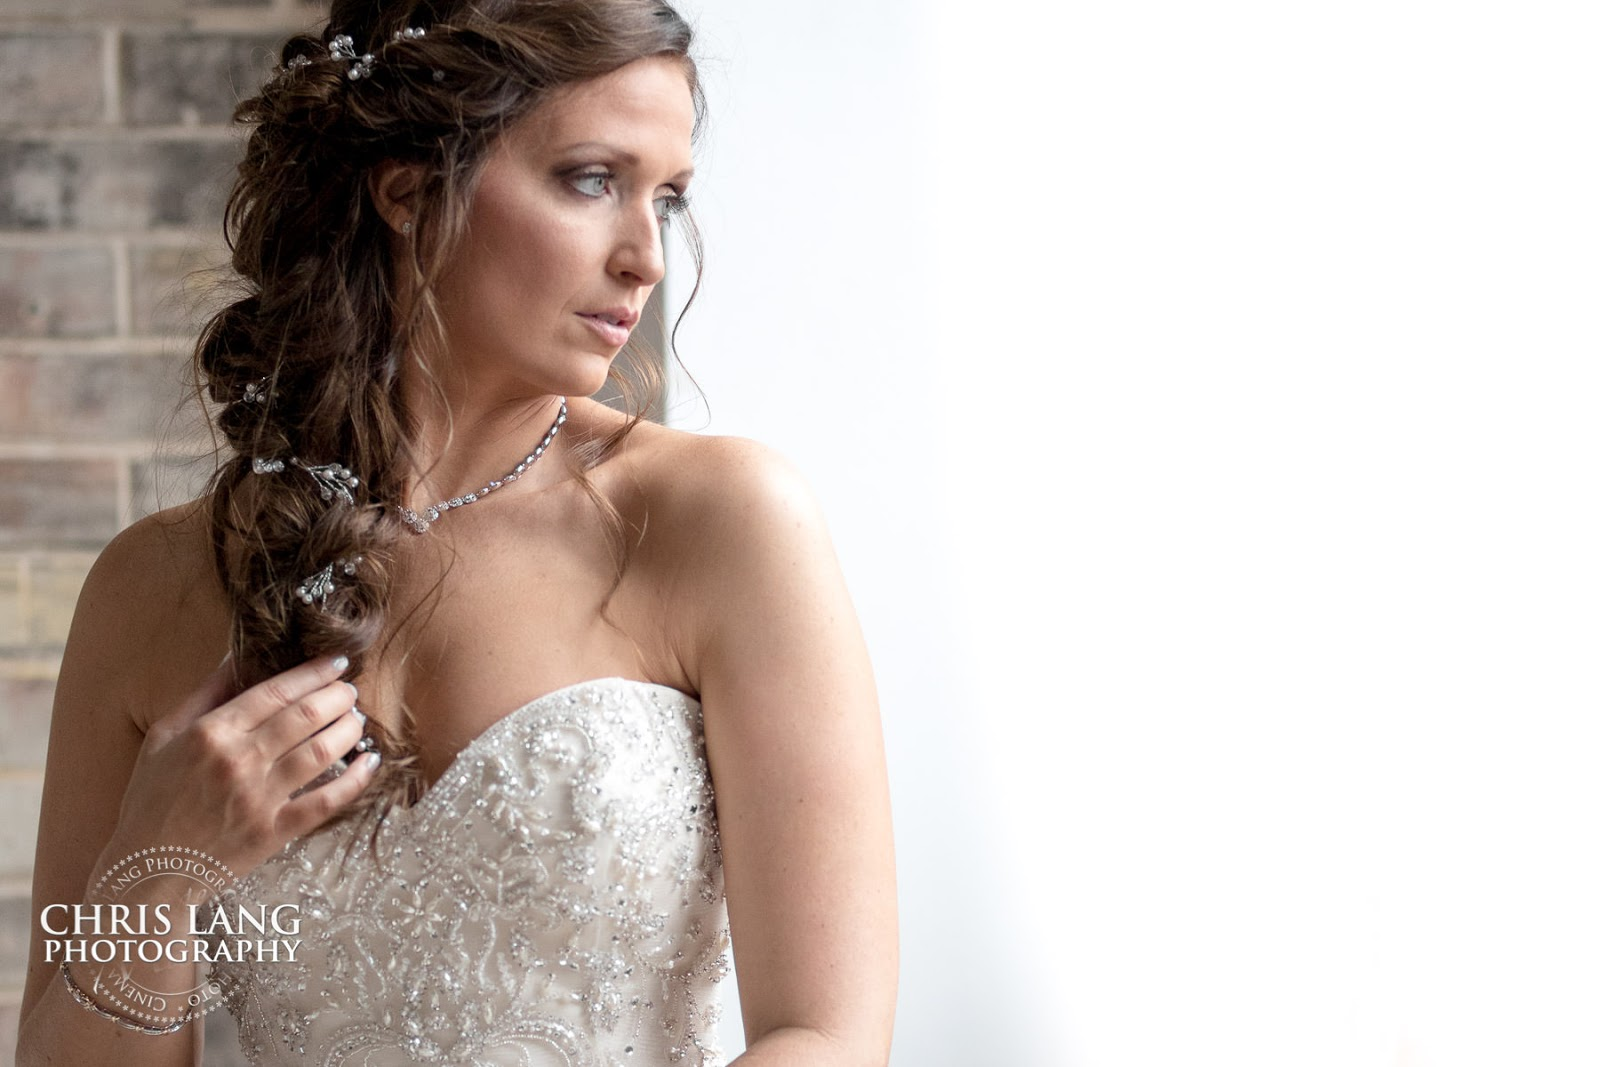 Image of bride - wedding - dress - jewelry - wedding ideas - wilmington nc wedding photographers -